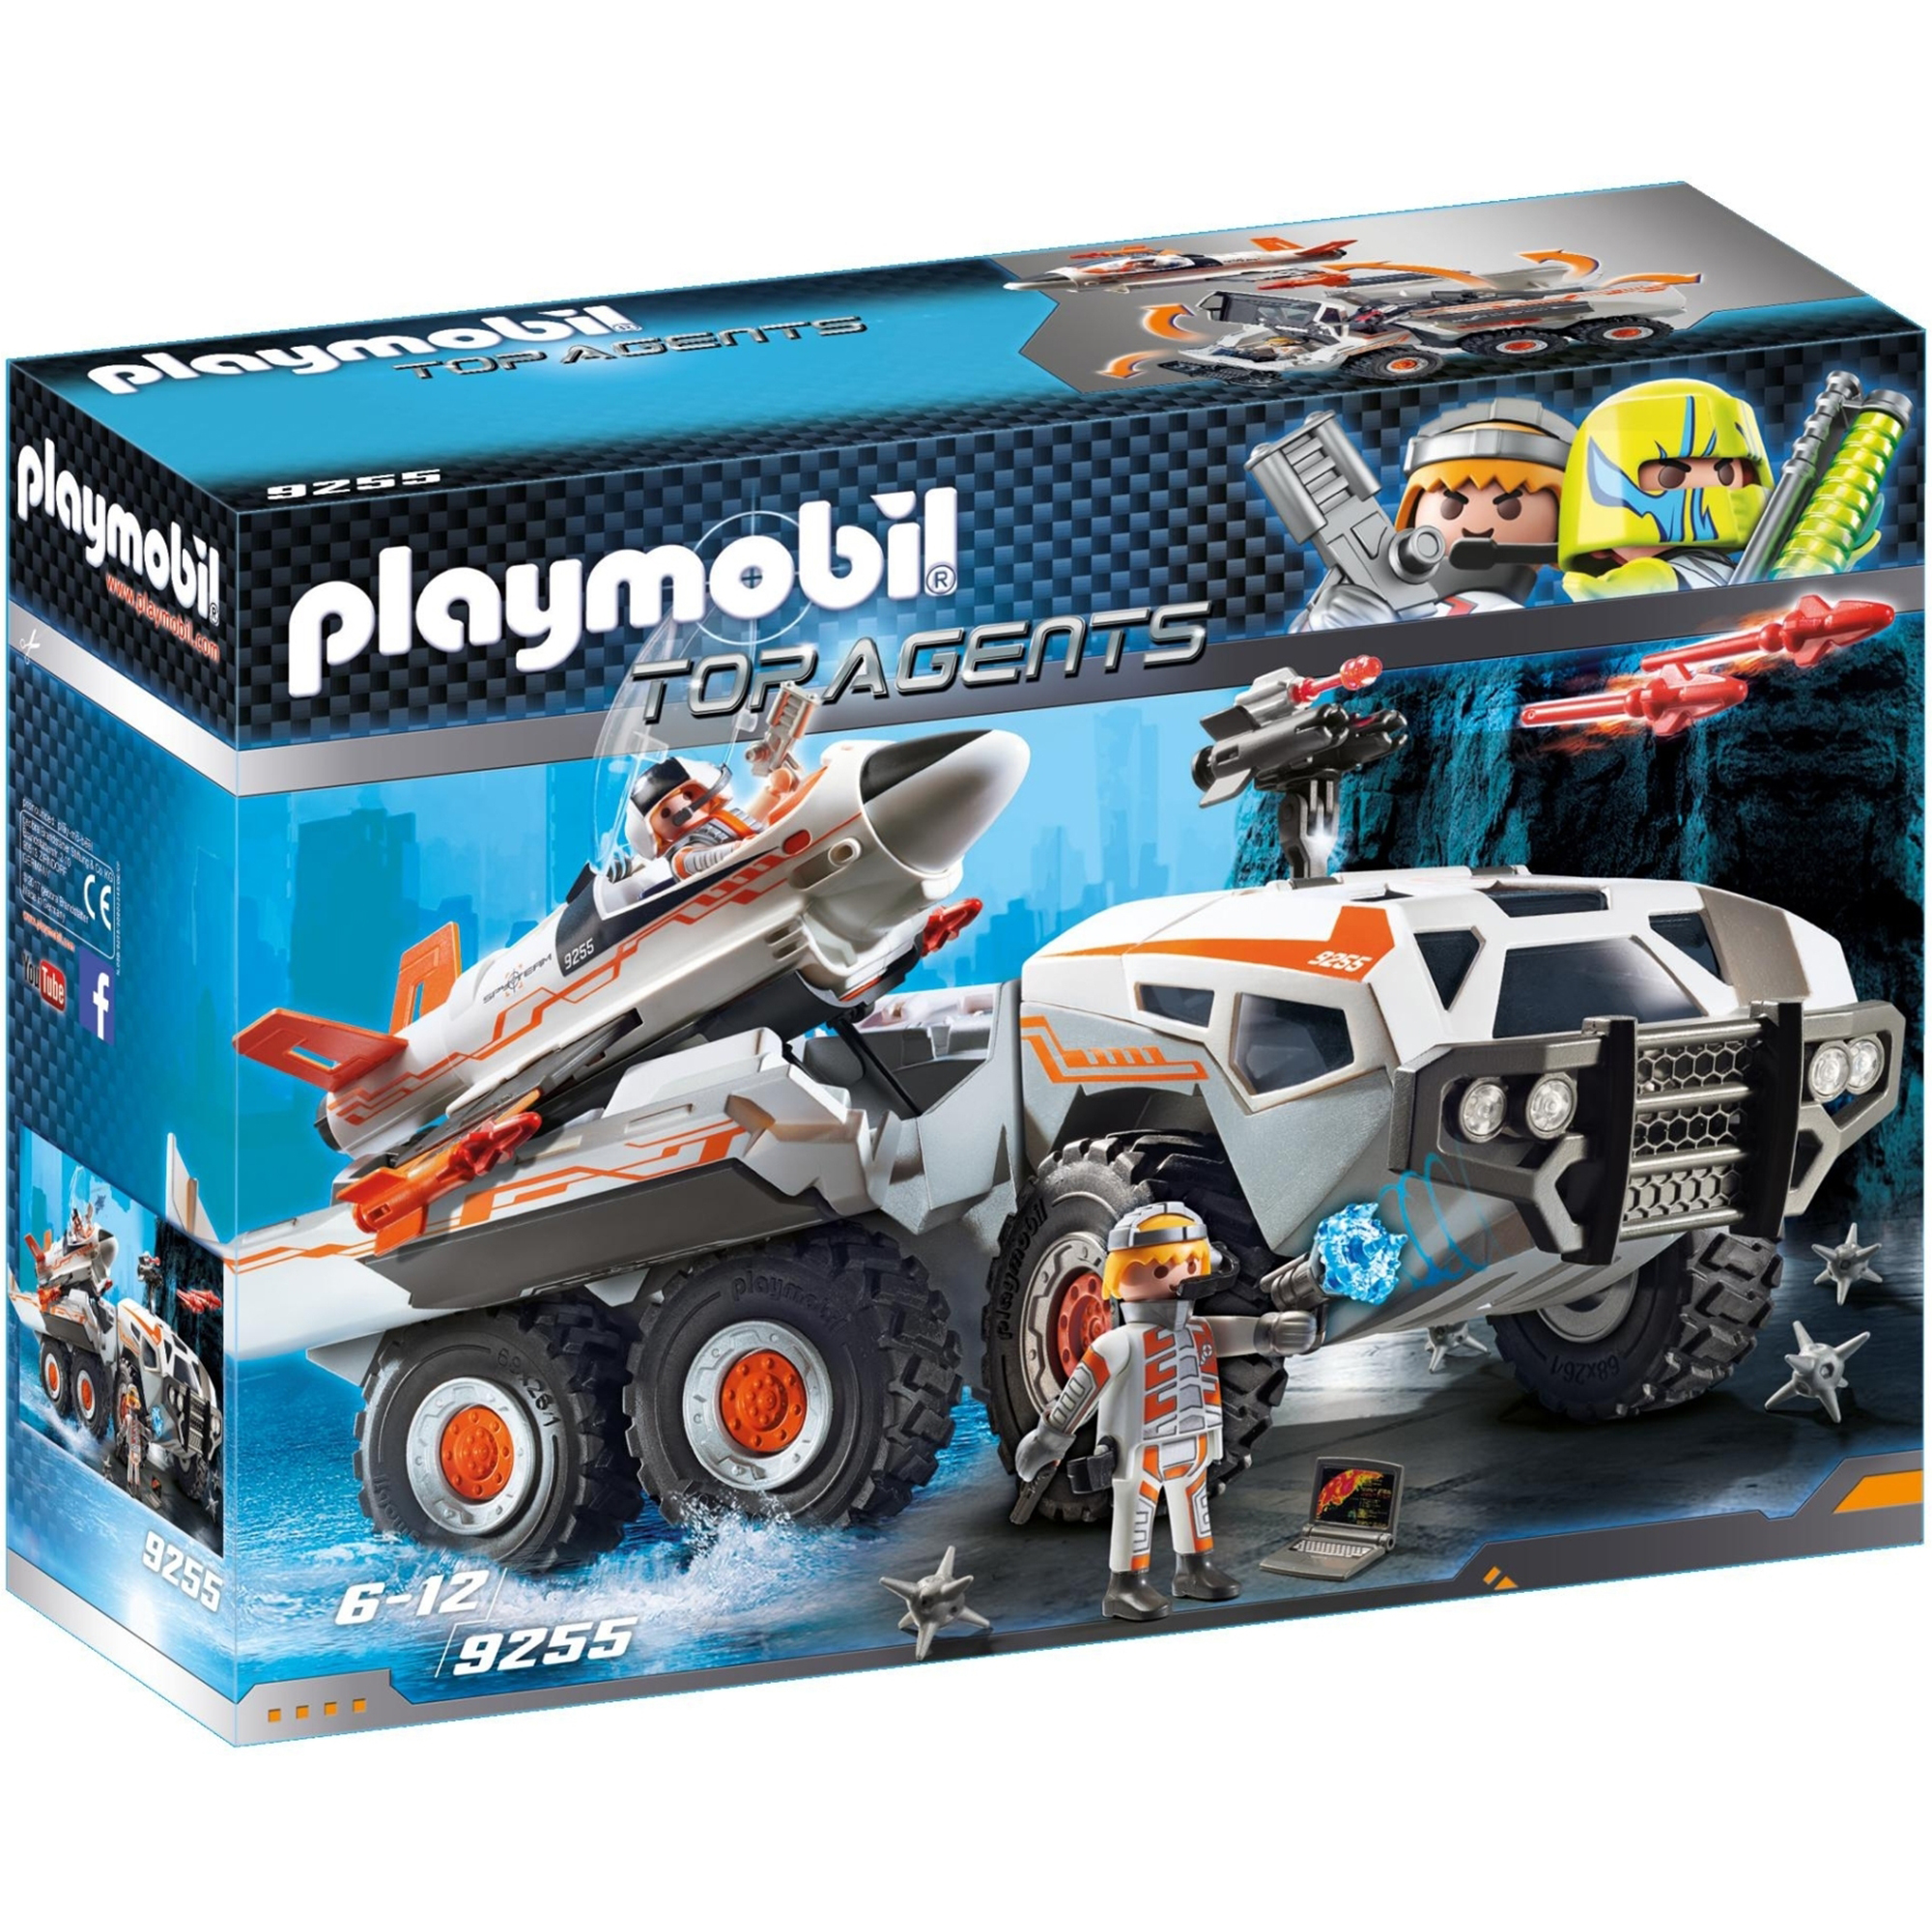 Playmobil Top Agents SpyTeam Battle Truck 9255